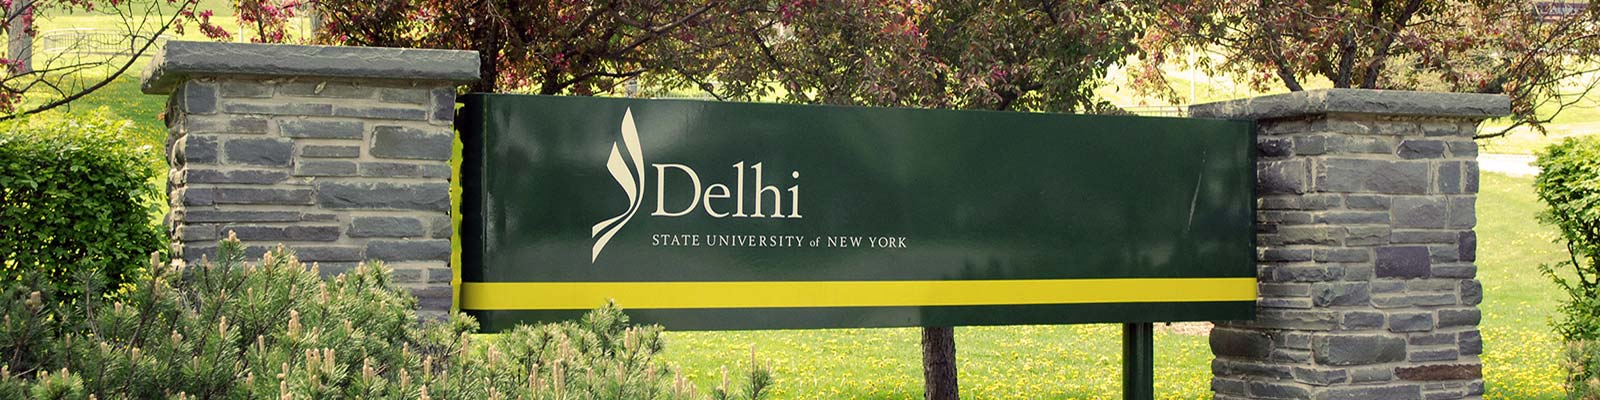 SUNY Delhi entrance sign